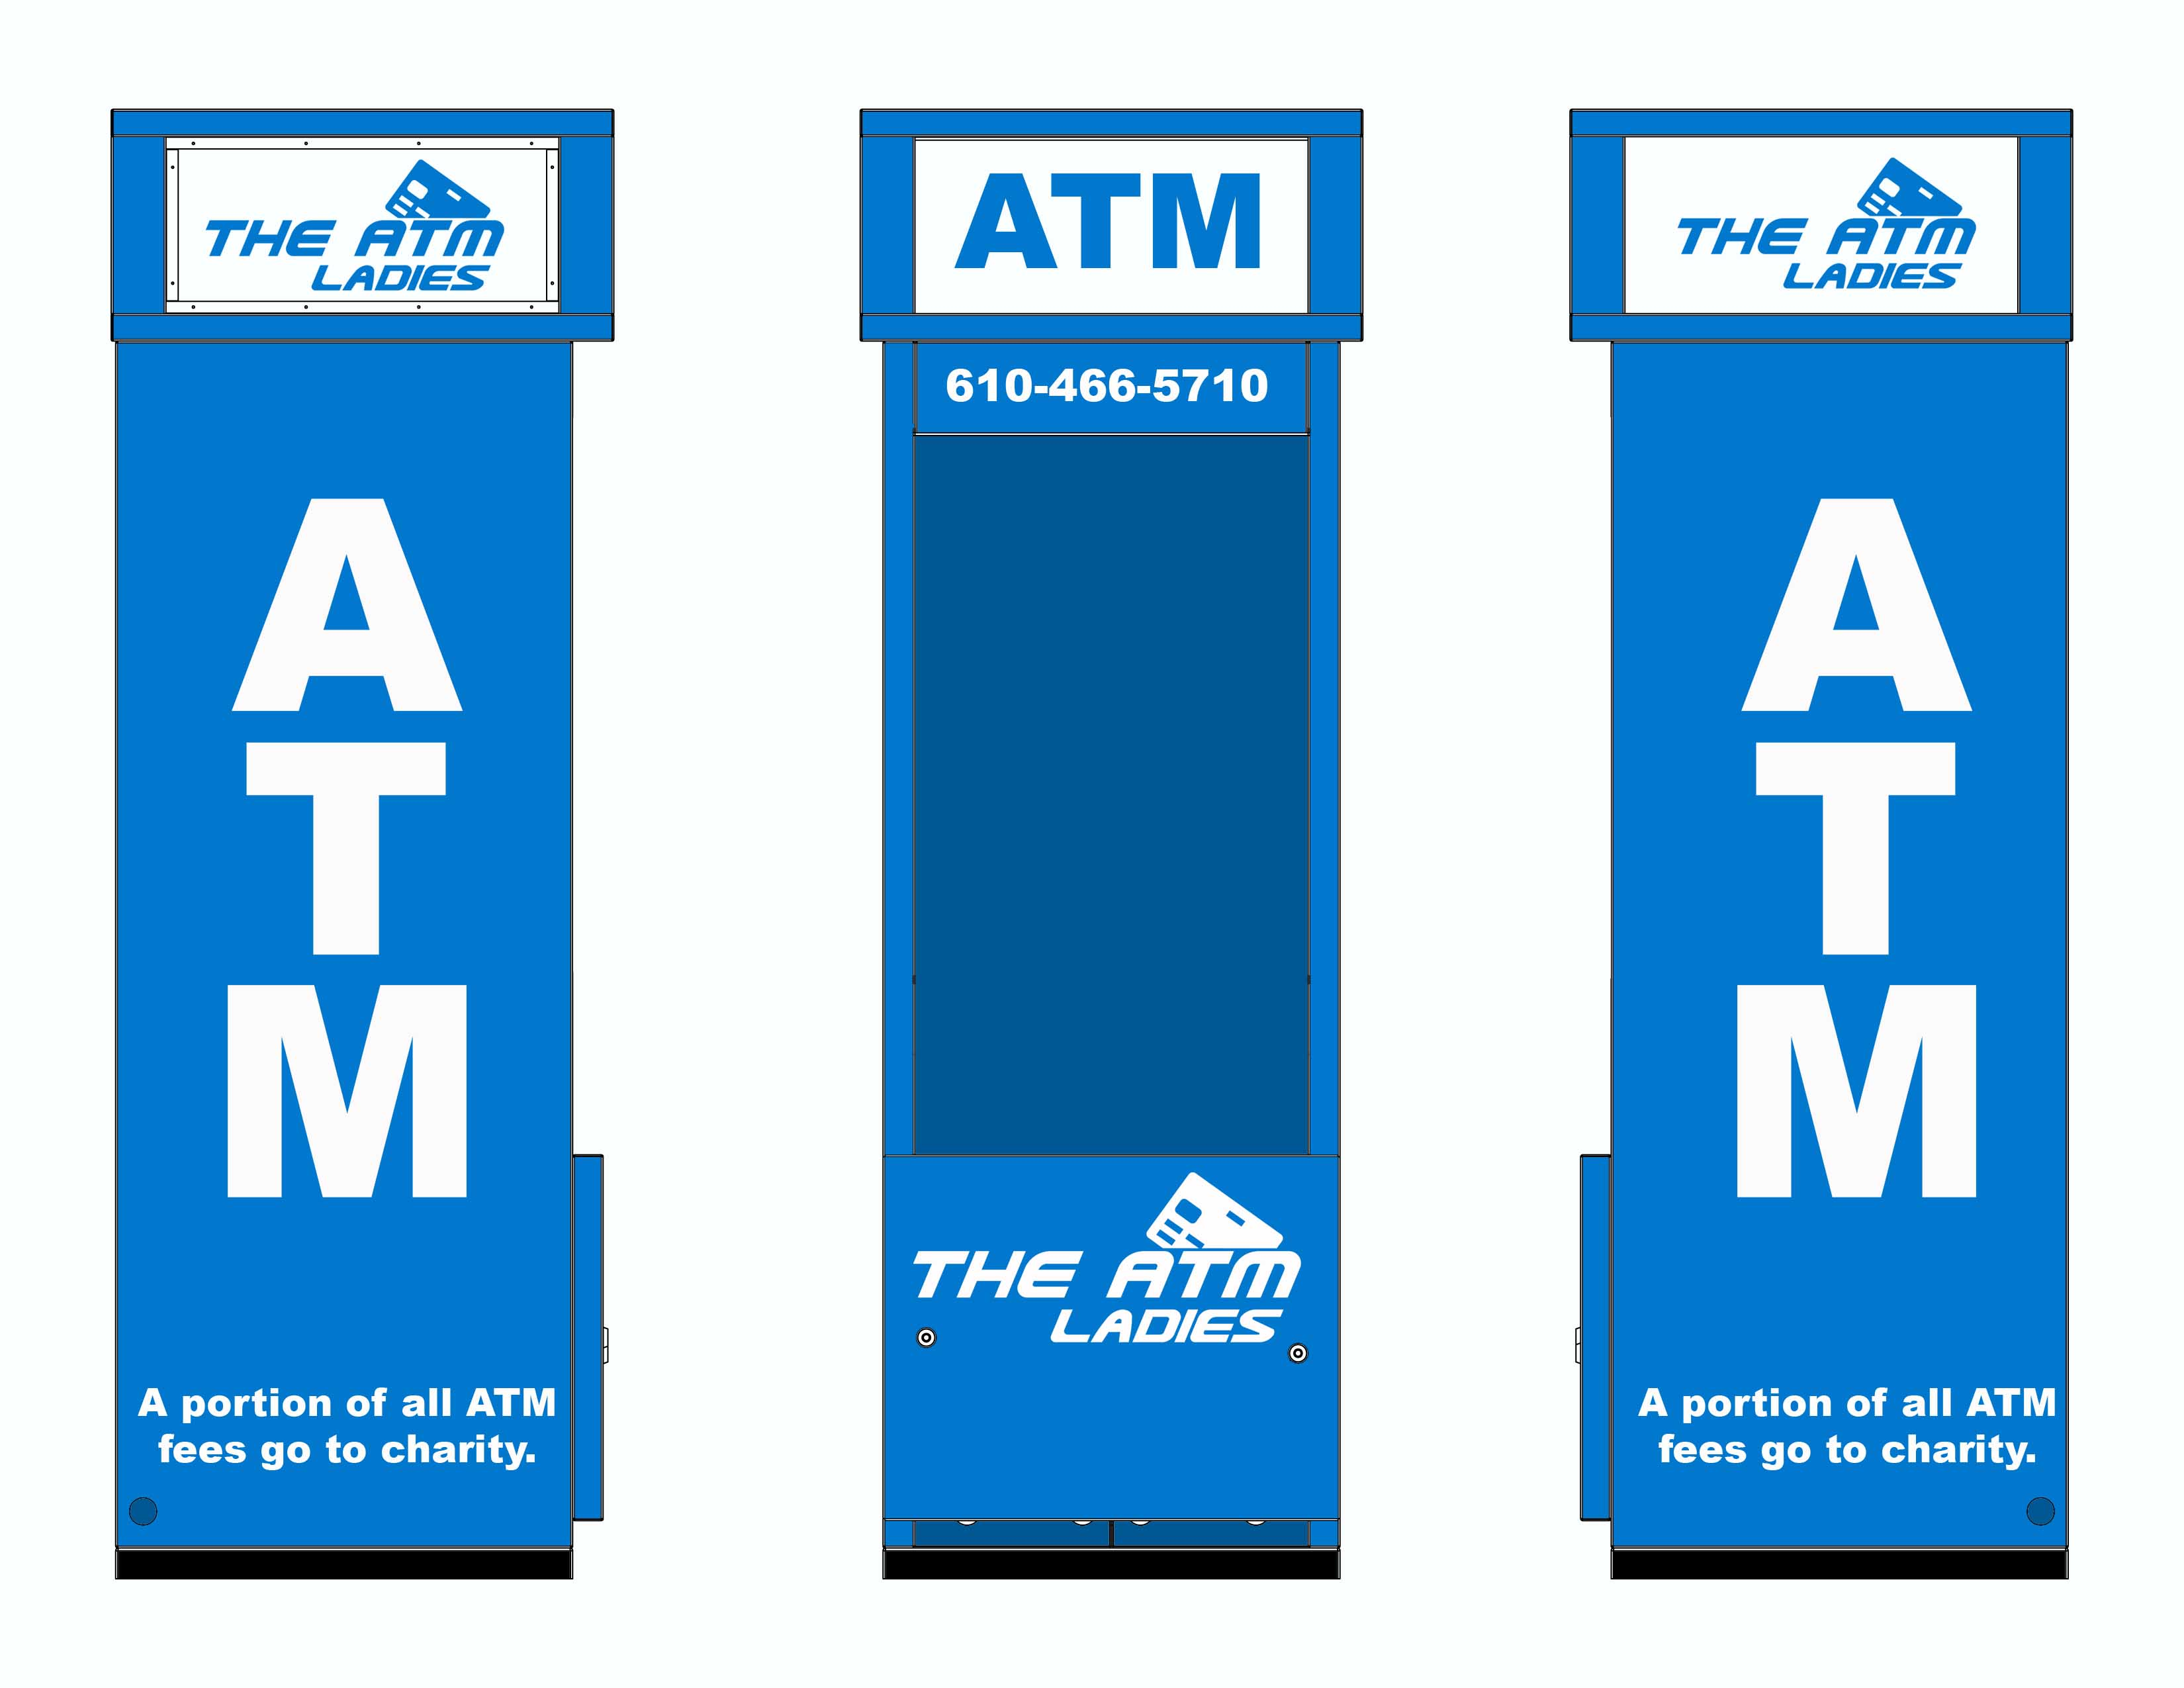 how can i get an atm machine in my business